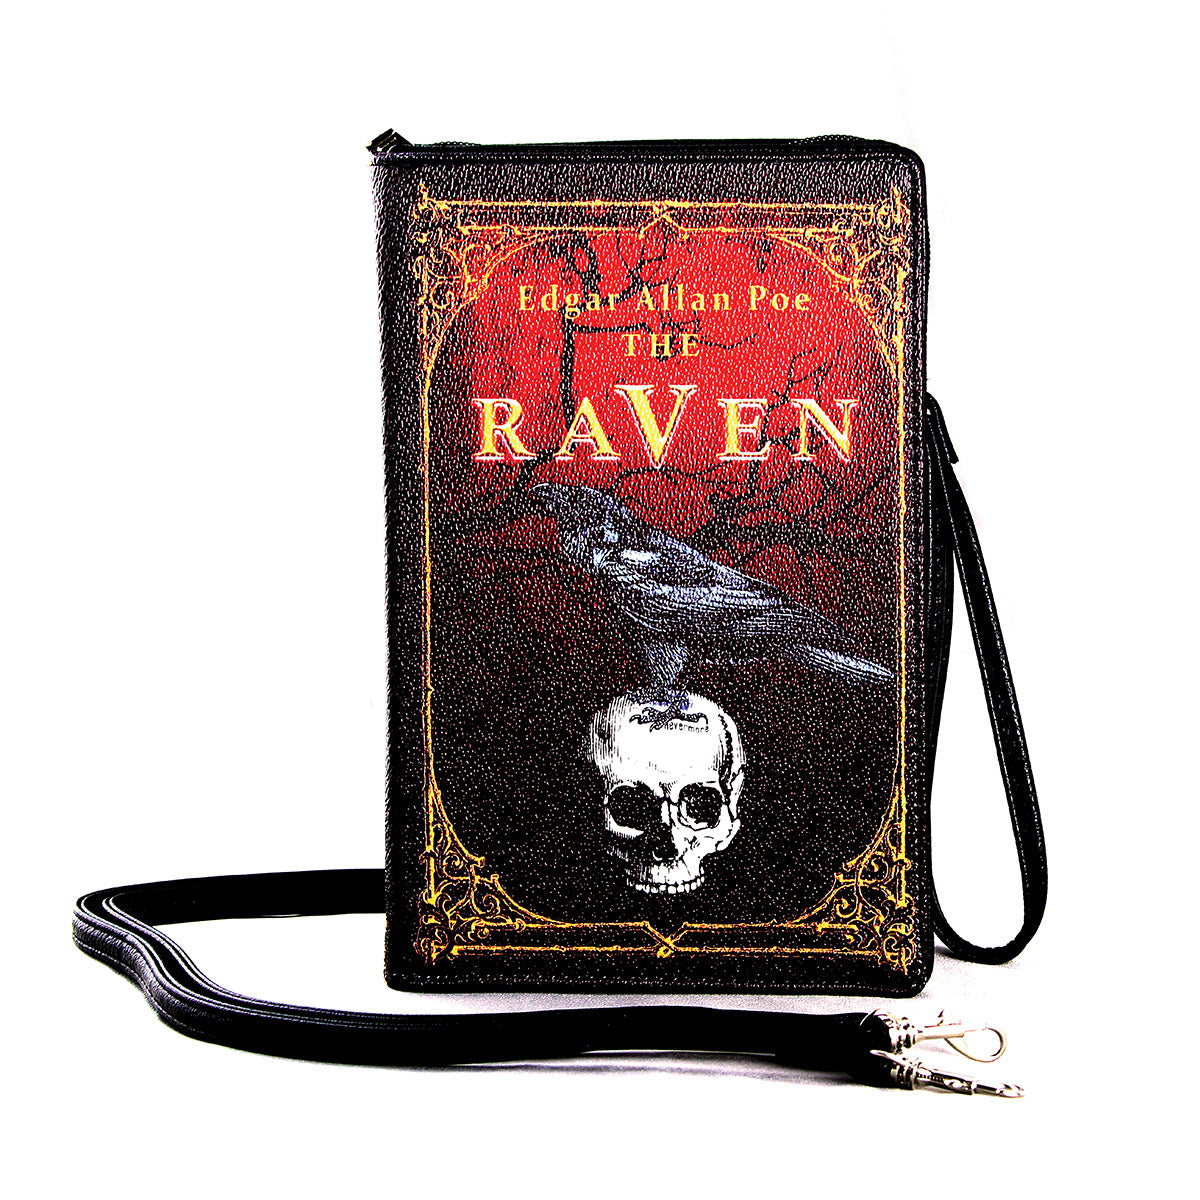 The Raven Vintage Book Clutch Bag in Vinyl, front view